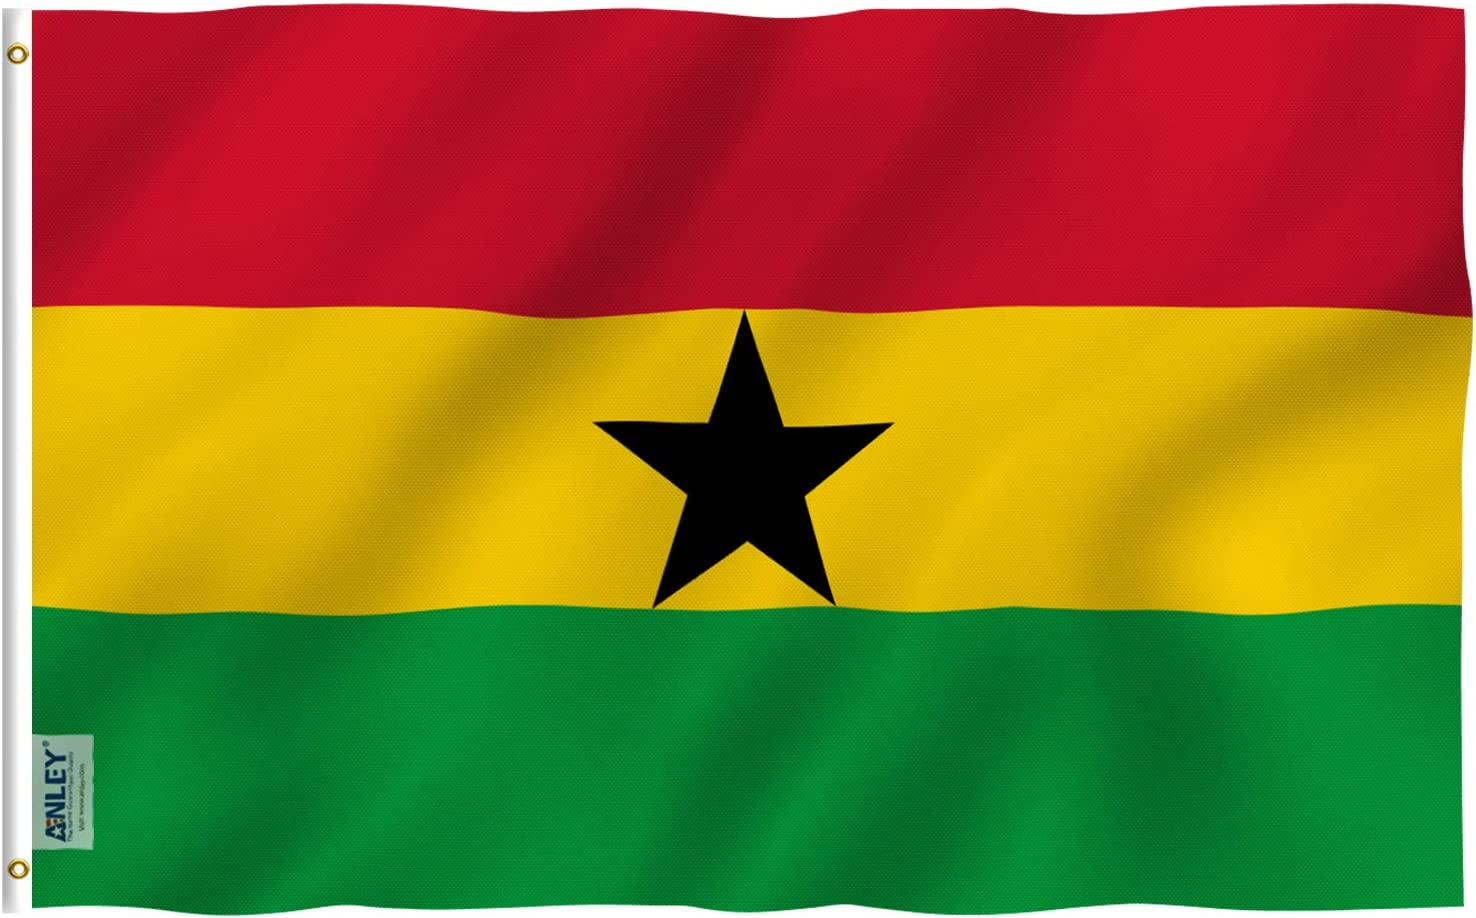 Anley Fly Breeze 3x5 Foot Ghana Flag - Vivid Color and Fade Proof - Canvas Header and Double Stitched - Ghanaian National Flags Polyester with Brass Grommets 3 X 5 Ft